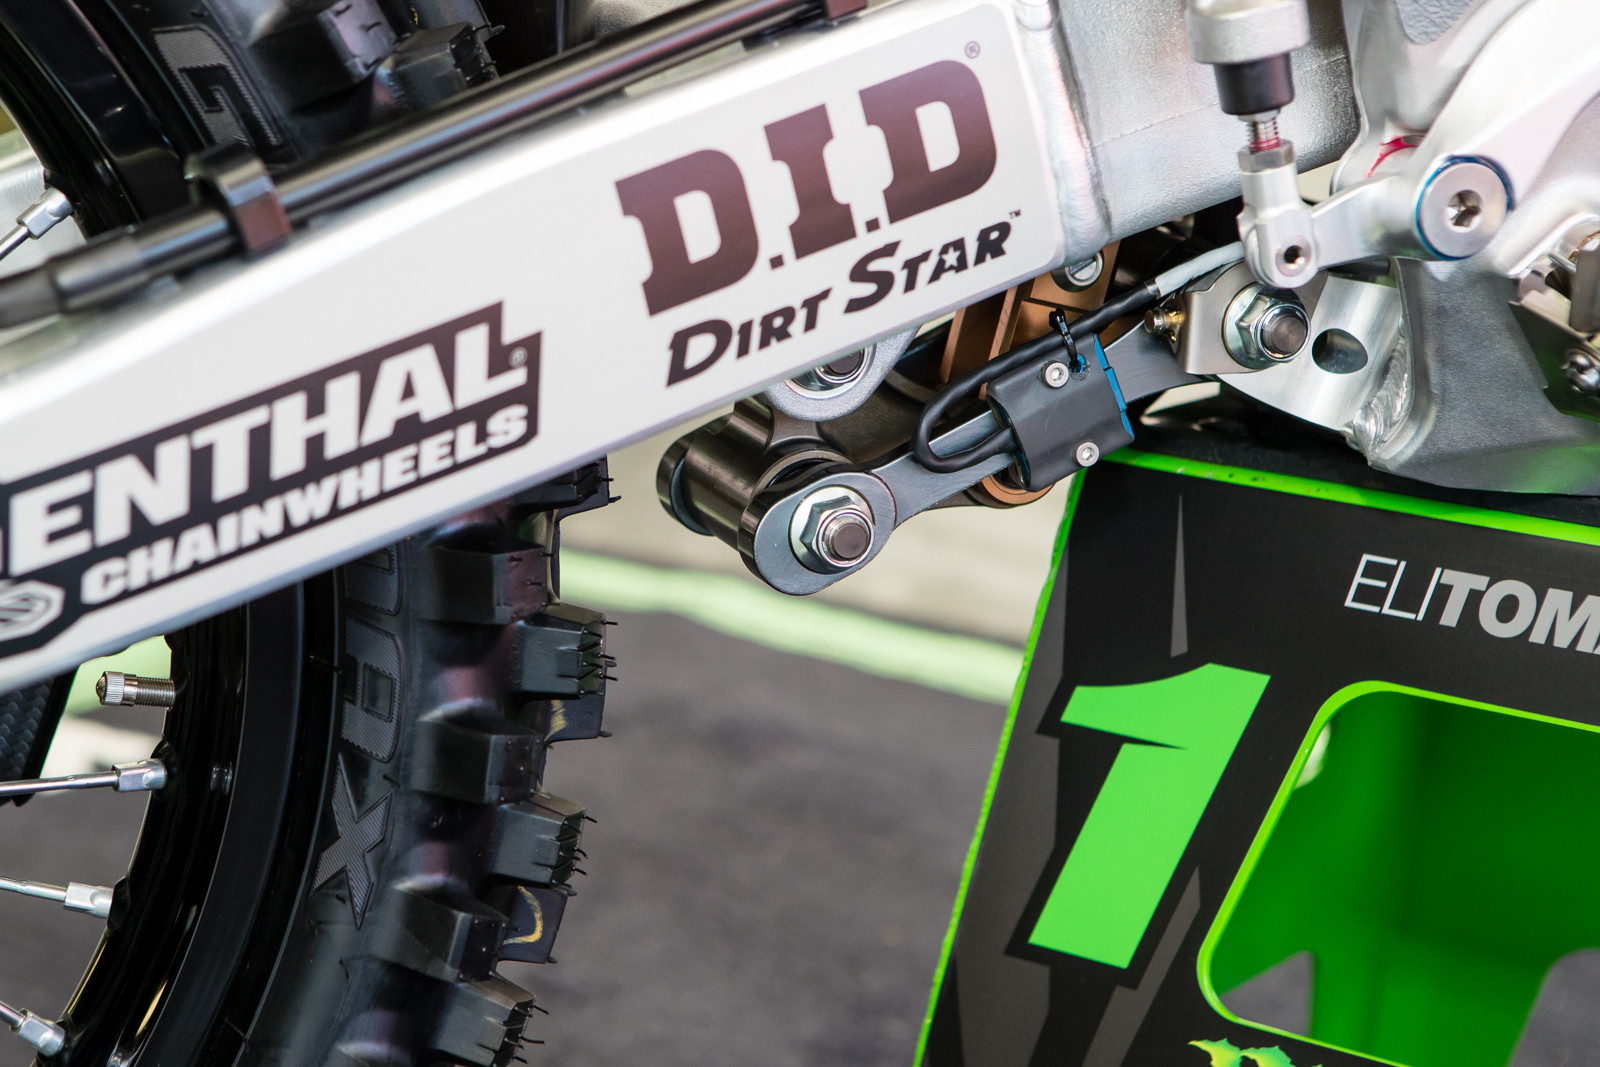 The Kawasaki team seems to have taken a note from the out-going RCH team on the placement of their rear shock travel sensor. This simple system is a lot more compact than a full travel rod along the side of the shock itself.